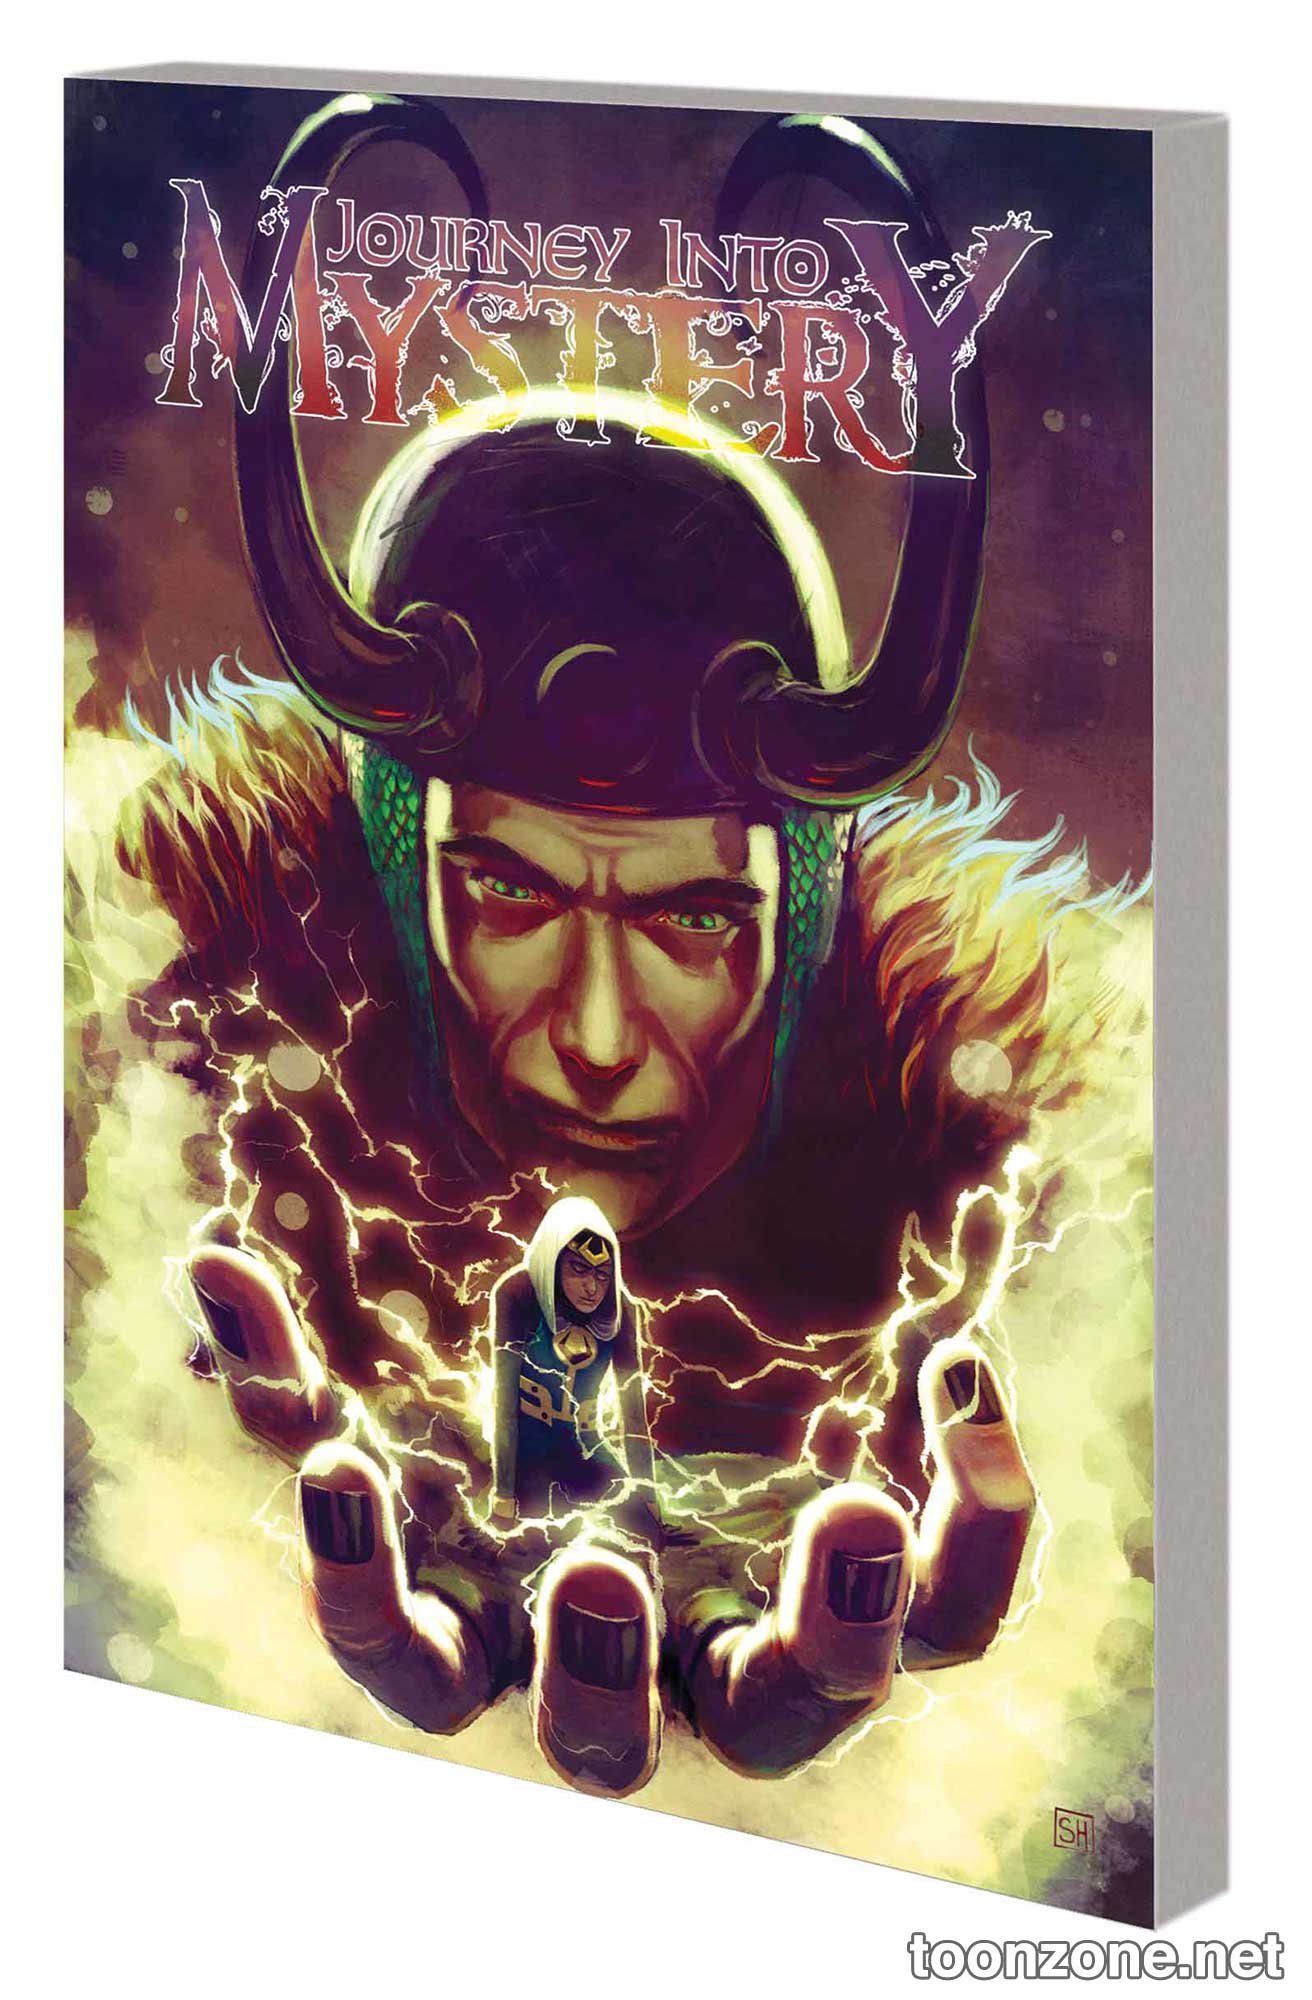 JOURNEY INTO MYSTERY BY KIERON GILLEN: THE COMPLETE COLLECTION VOL. 2 TPB